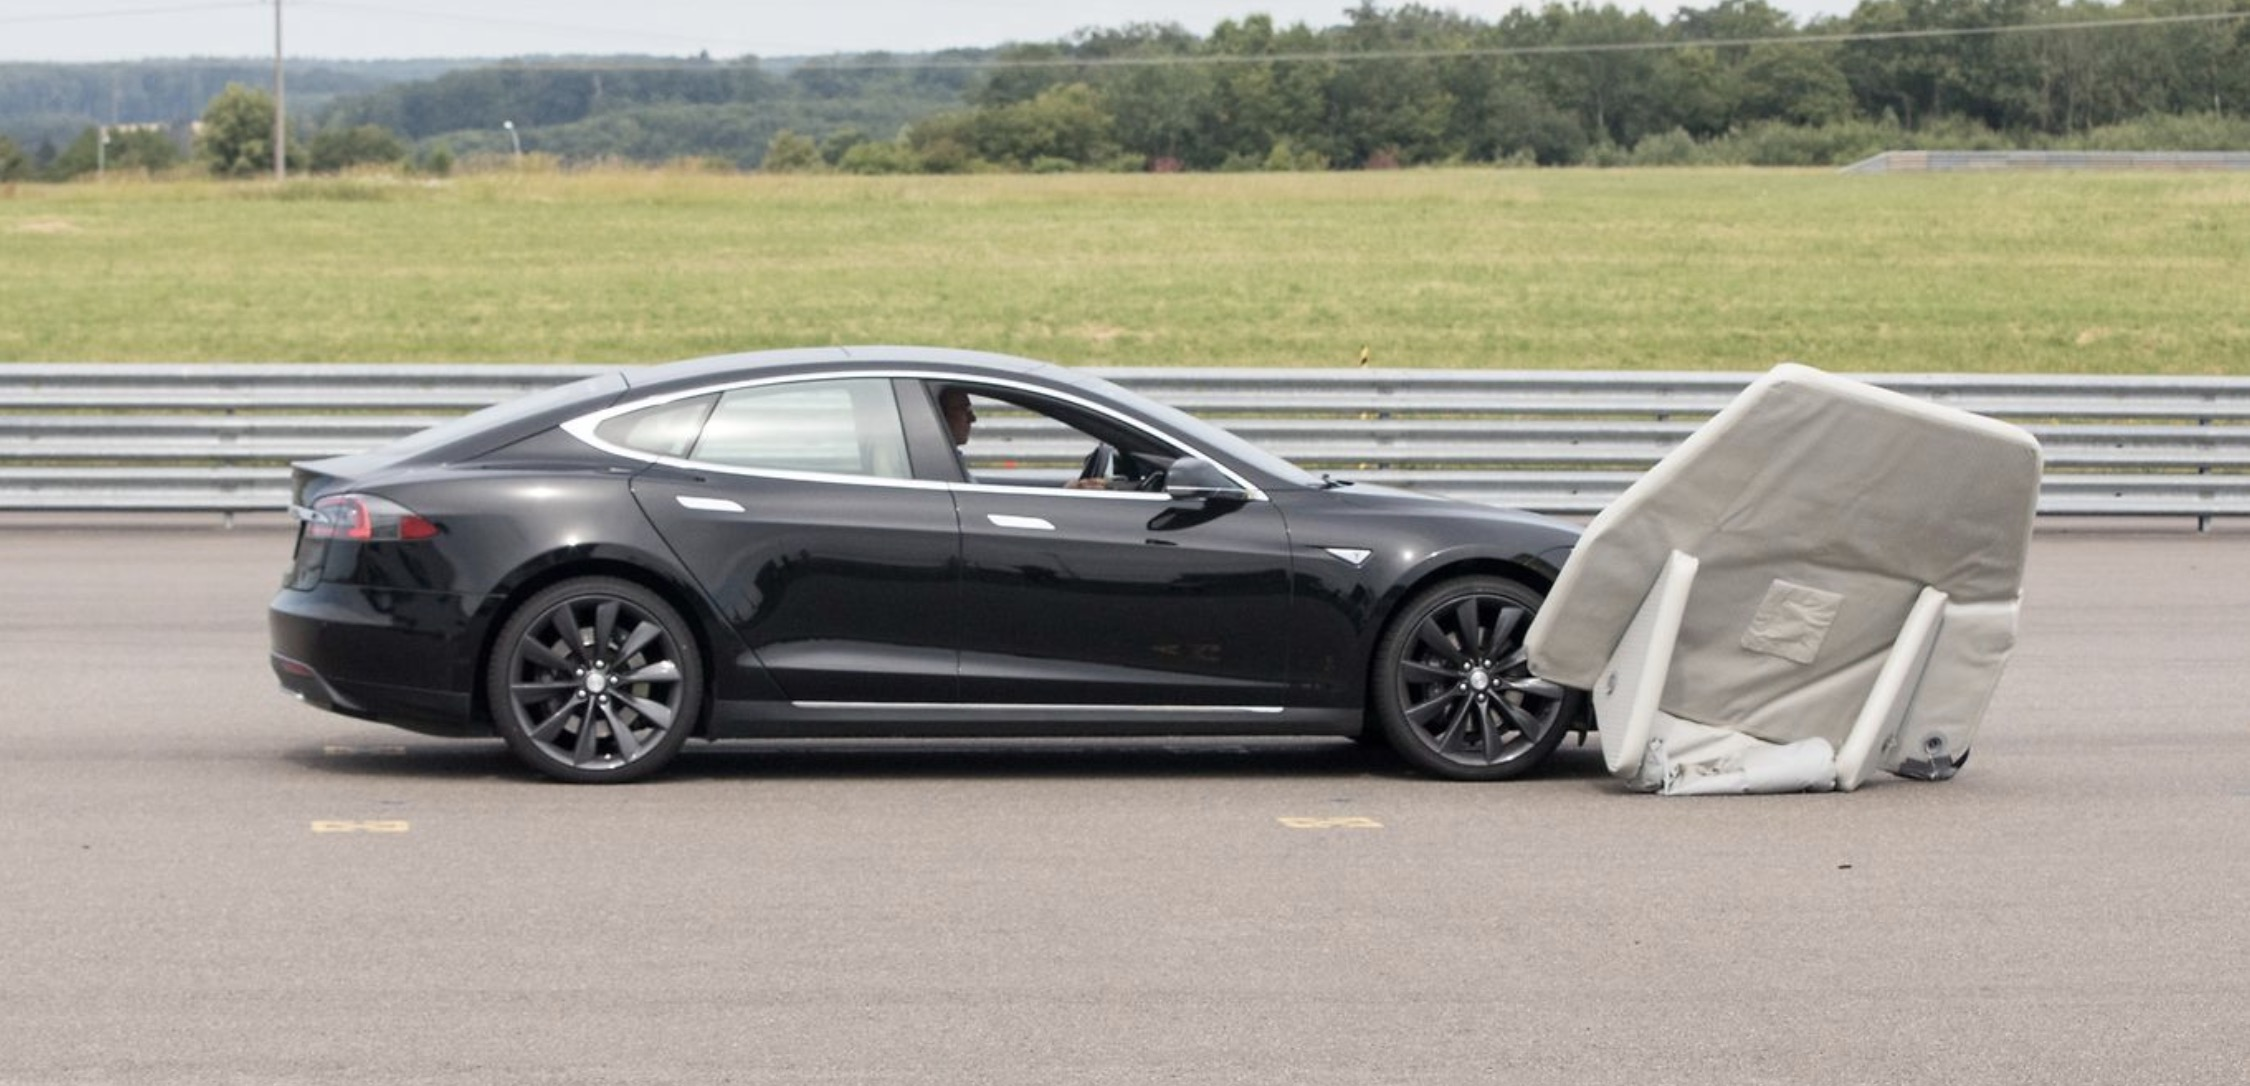 Tesla Model S Fails Auto Braking Test Tesla Questions Validity Of The Test